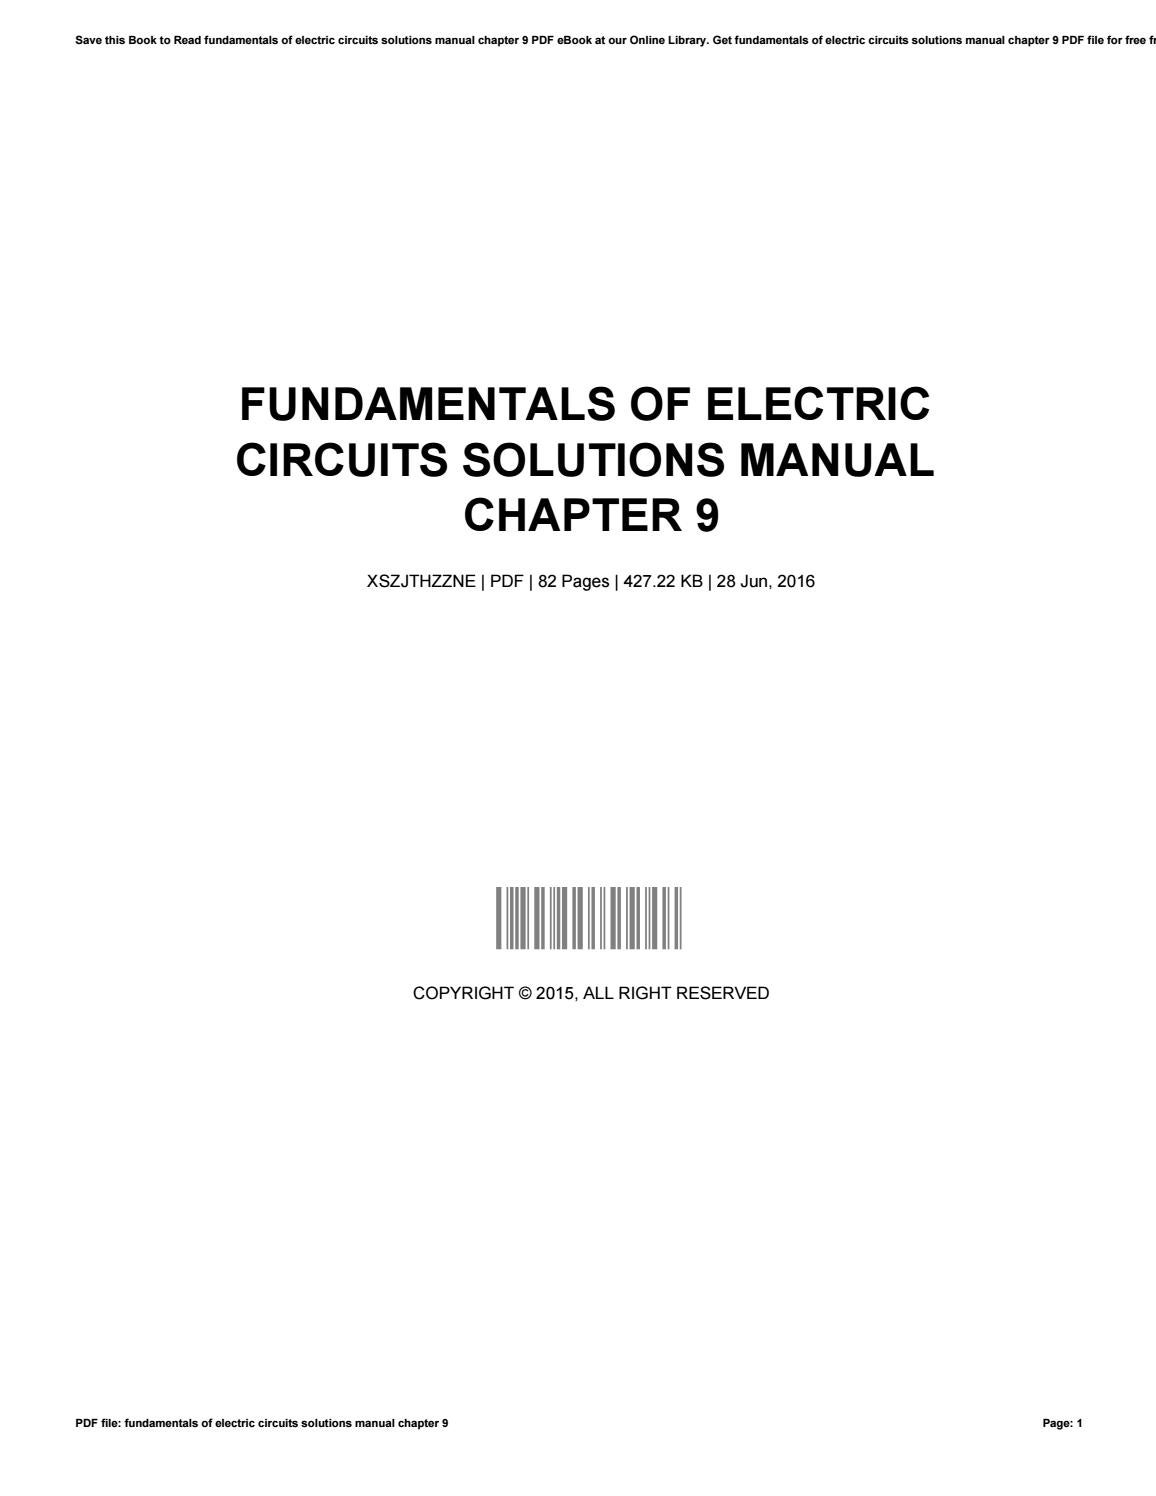 Fundamentals of electric circuits solutions manual chapter 9 by  HaroldLinden2744 - issuu